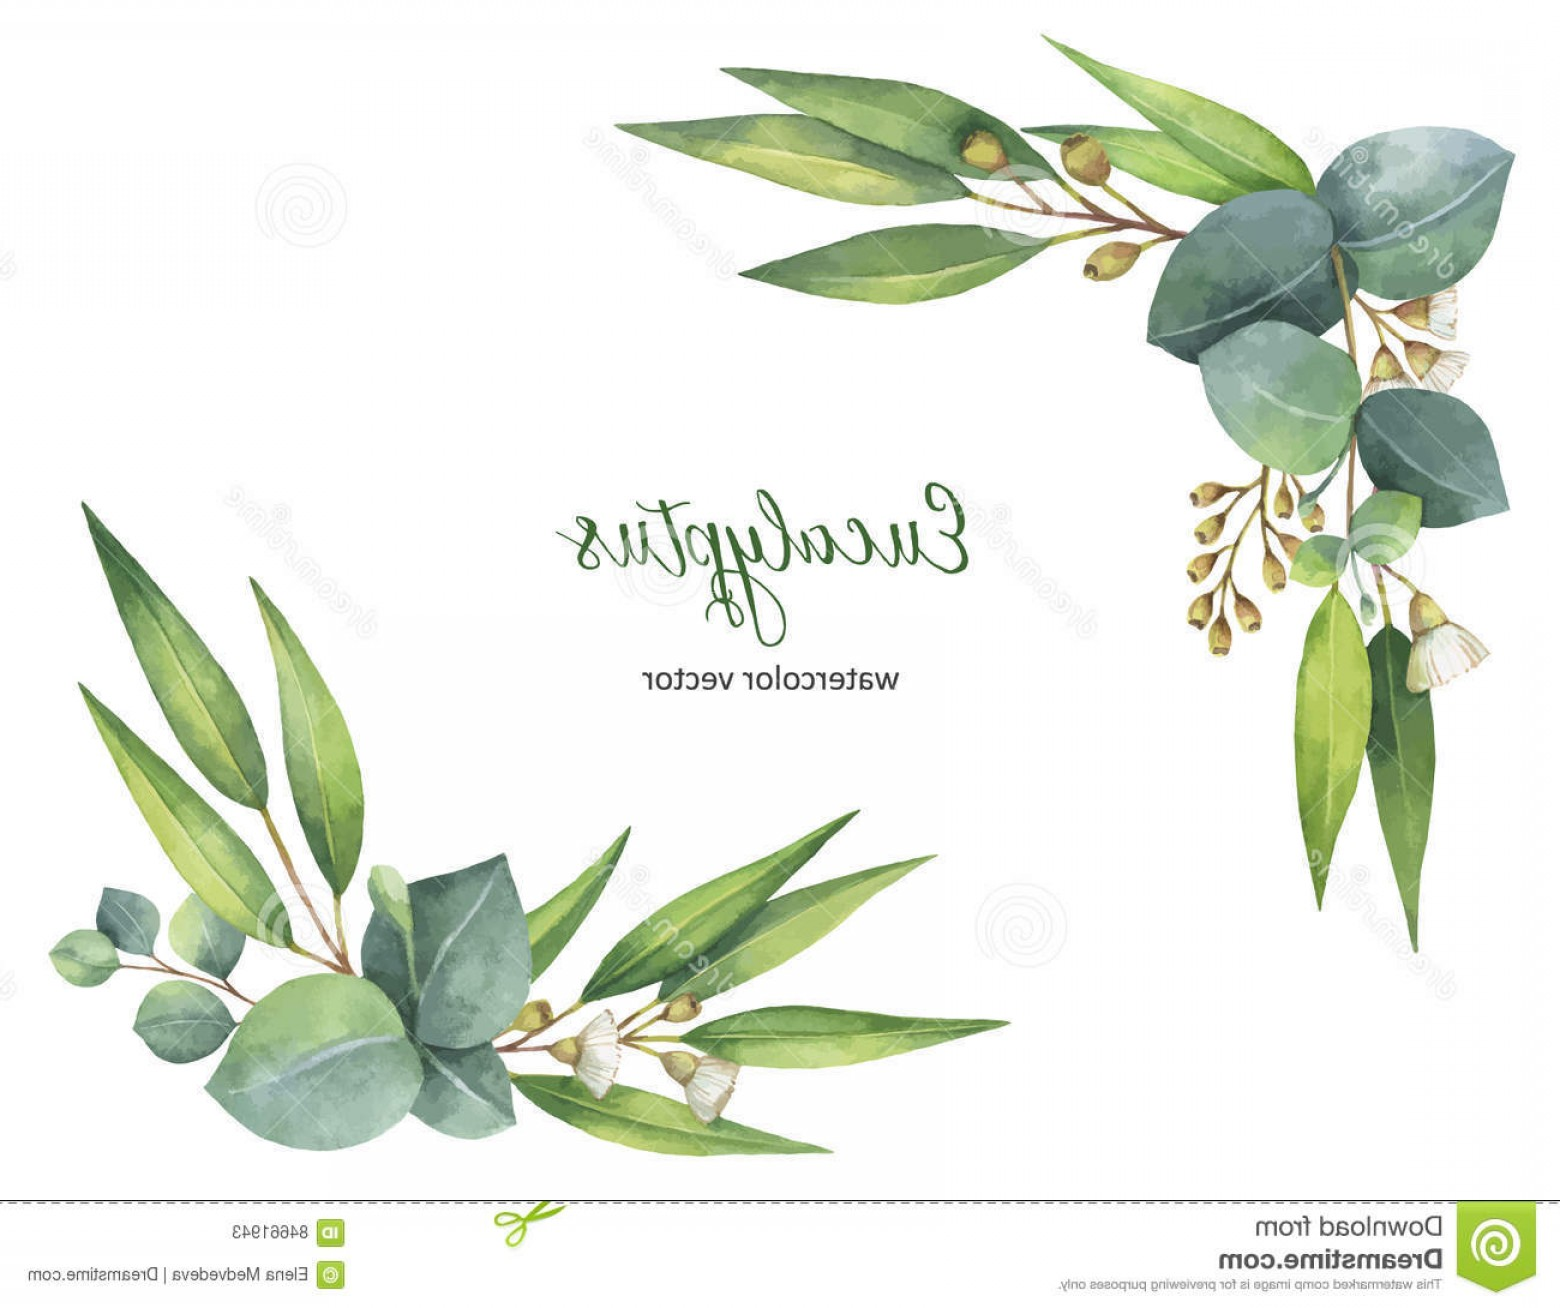 Summer Wreath Free Vector Watercolor: Stock Illustration Watercolor Vector Wreath Green Eucalyptus Leaves Branches Healing Herbs Cards Wedding Invitation Posters Save Image